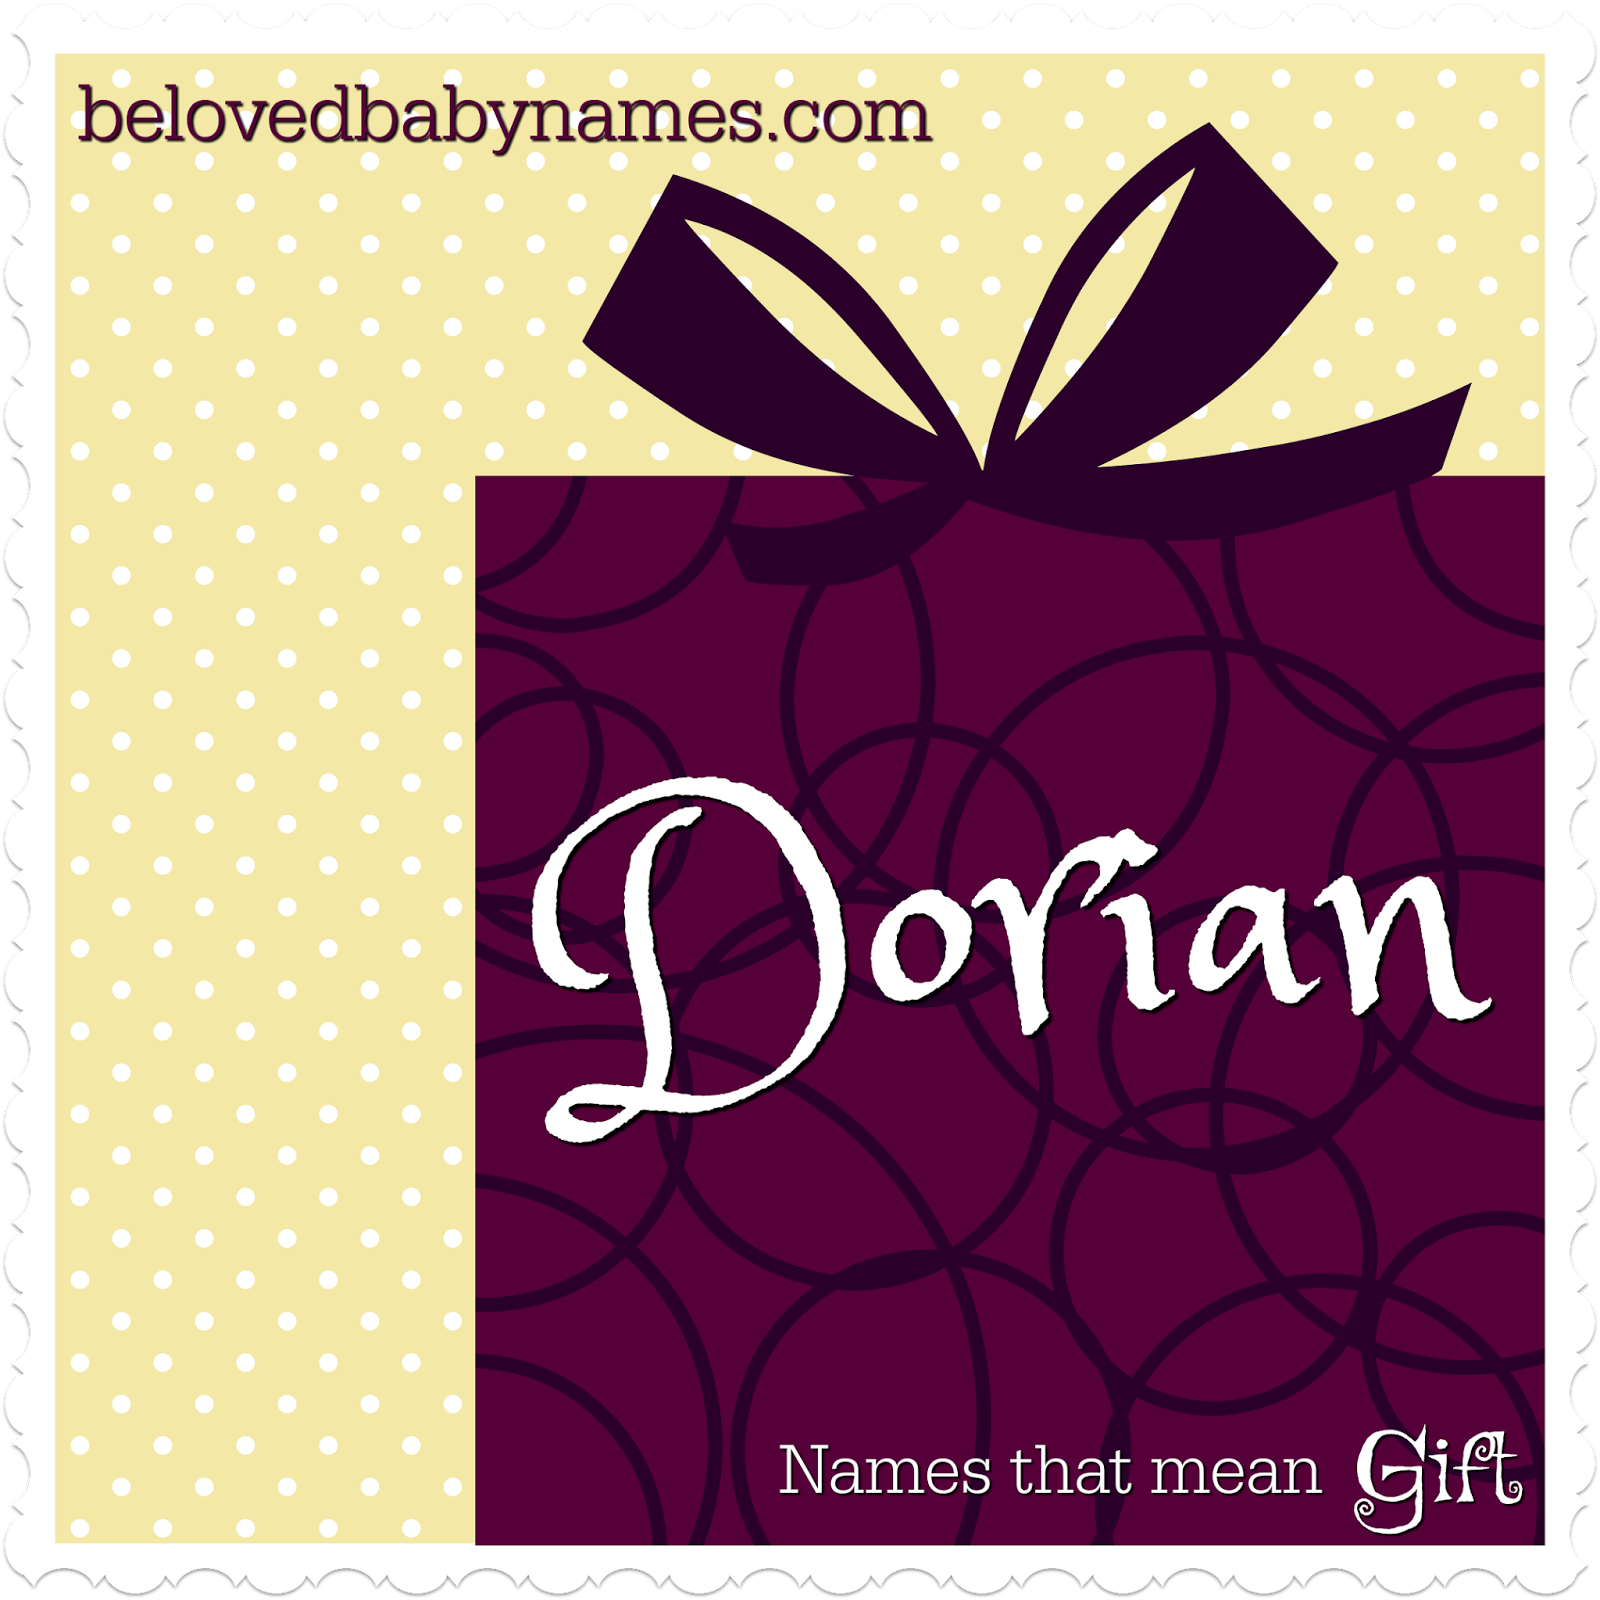 Beloved baby names december 2016 but i still think that donatello is a very handsome name with a lot of potential it would make a great way to honor a don in the family negle Gallery